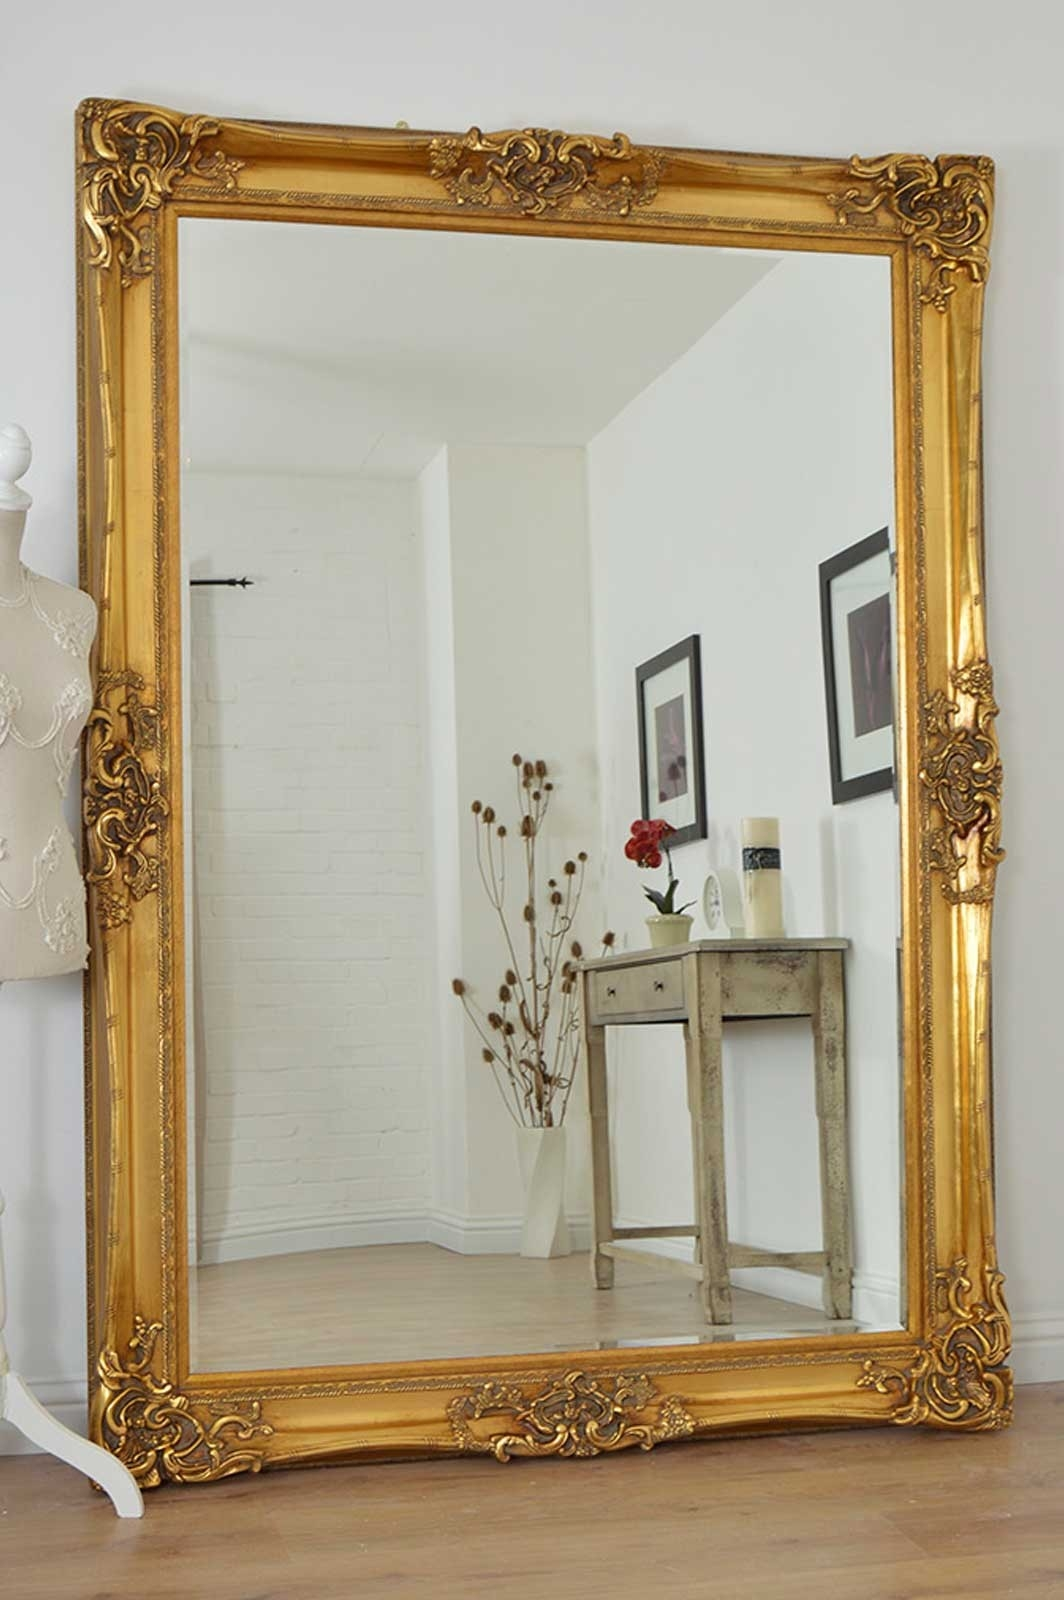 Large Gold Very Ornate Antique Design Wall Mirror 7ft X 5ft 213cm Throughout Ornate Wall Mirror (Image 5 of 15)